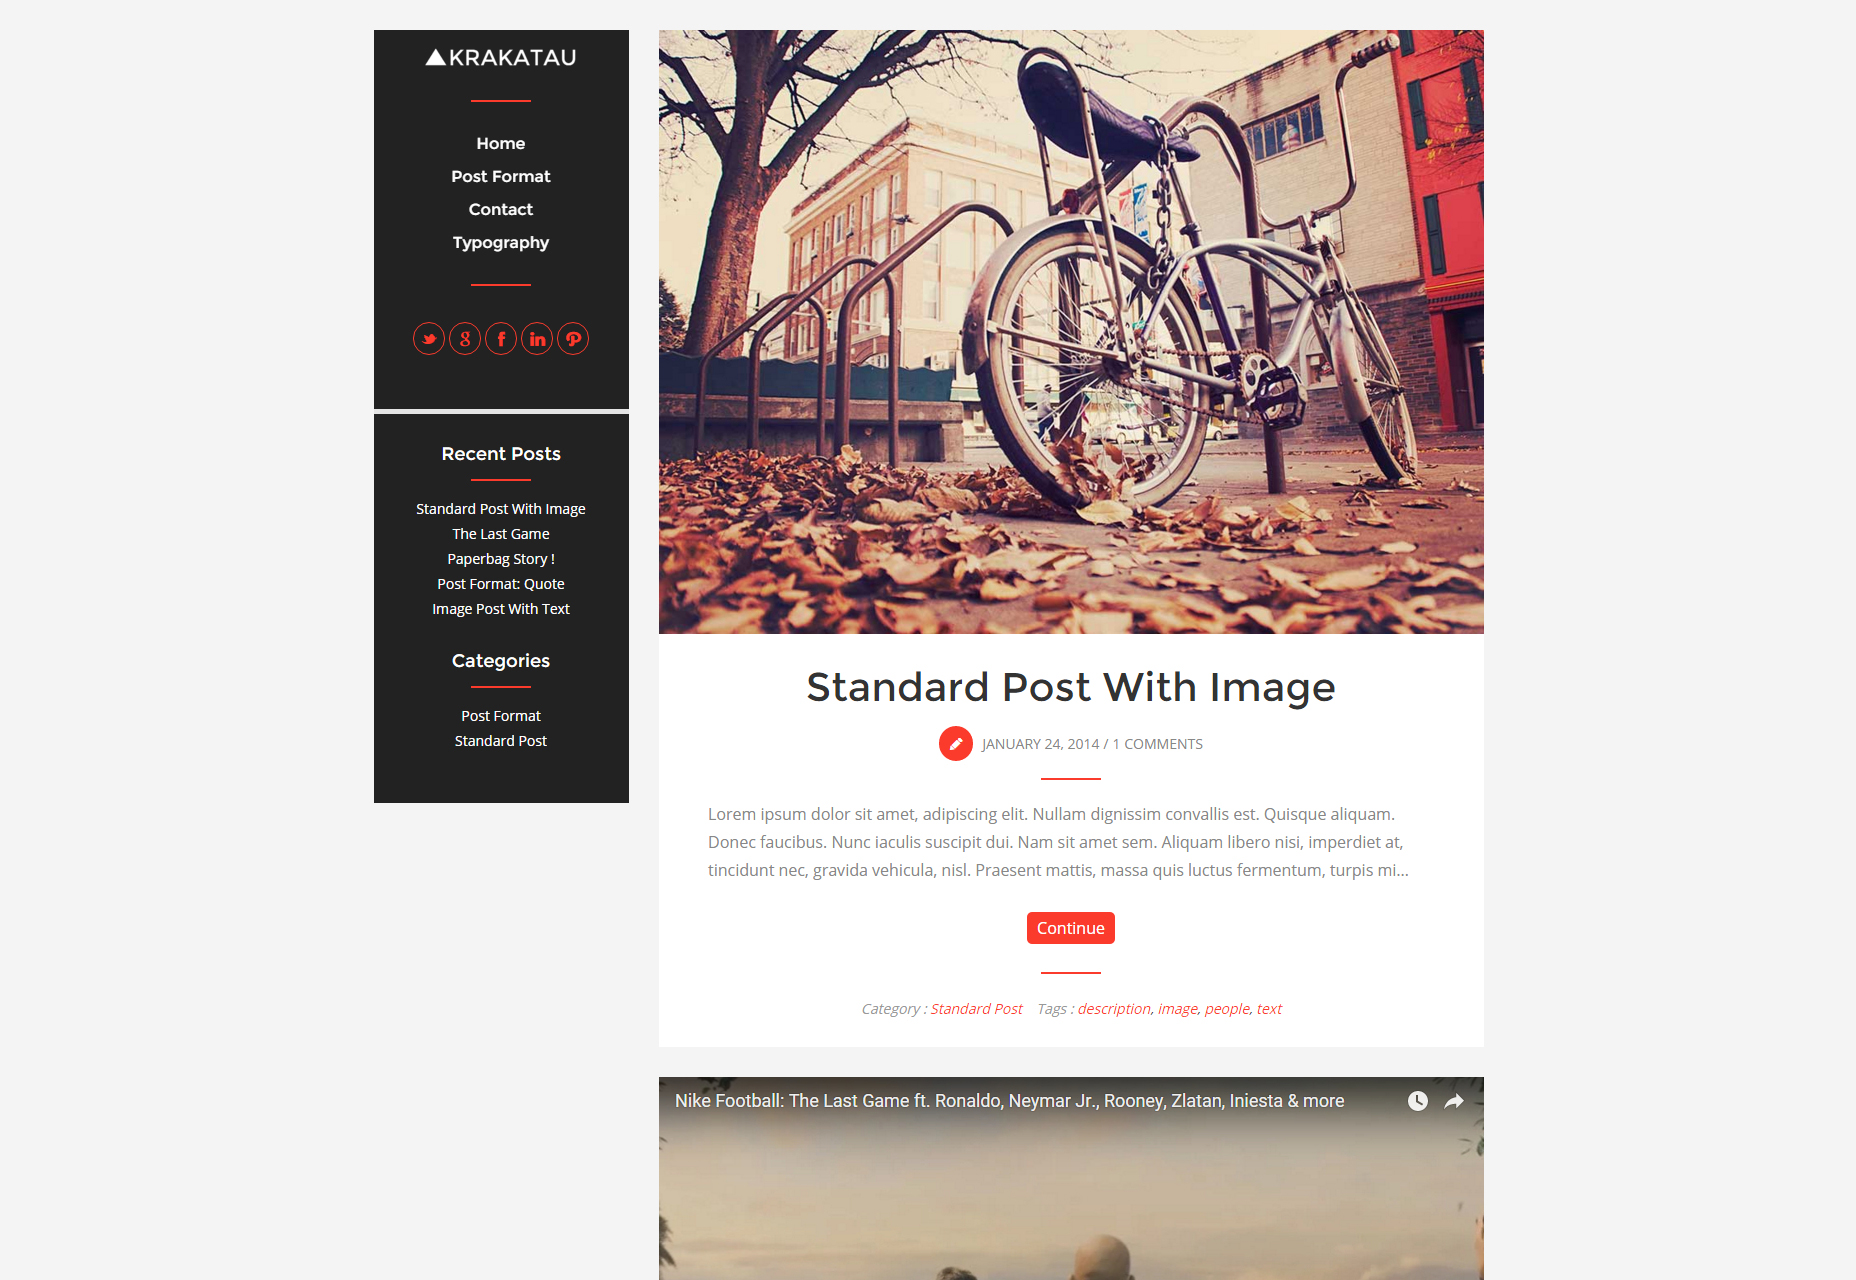 Krakatau: Modern & Clean Blogging WordPress Theme